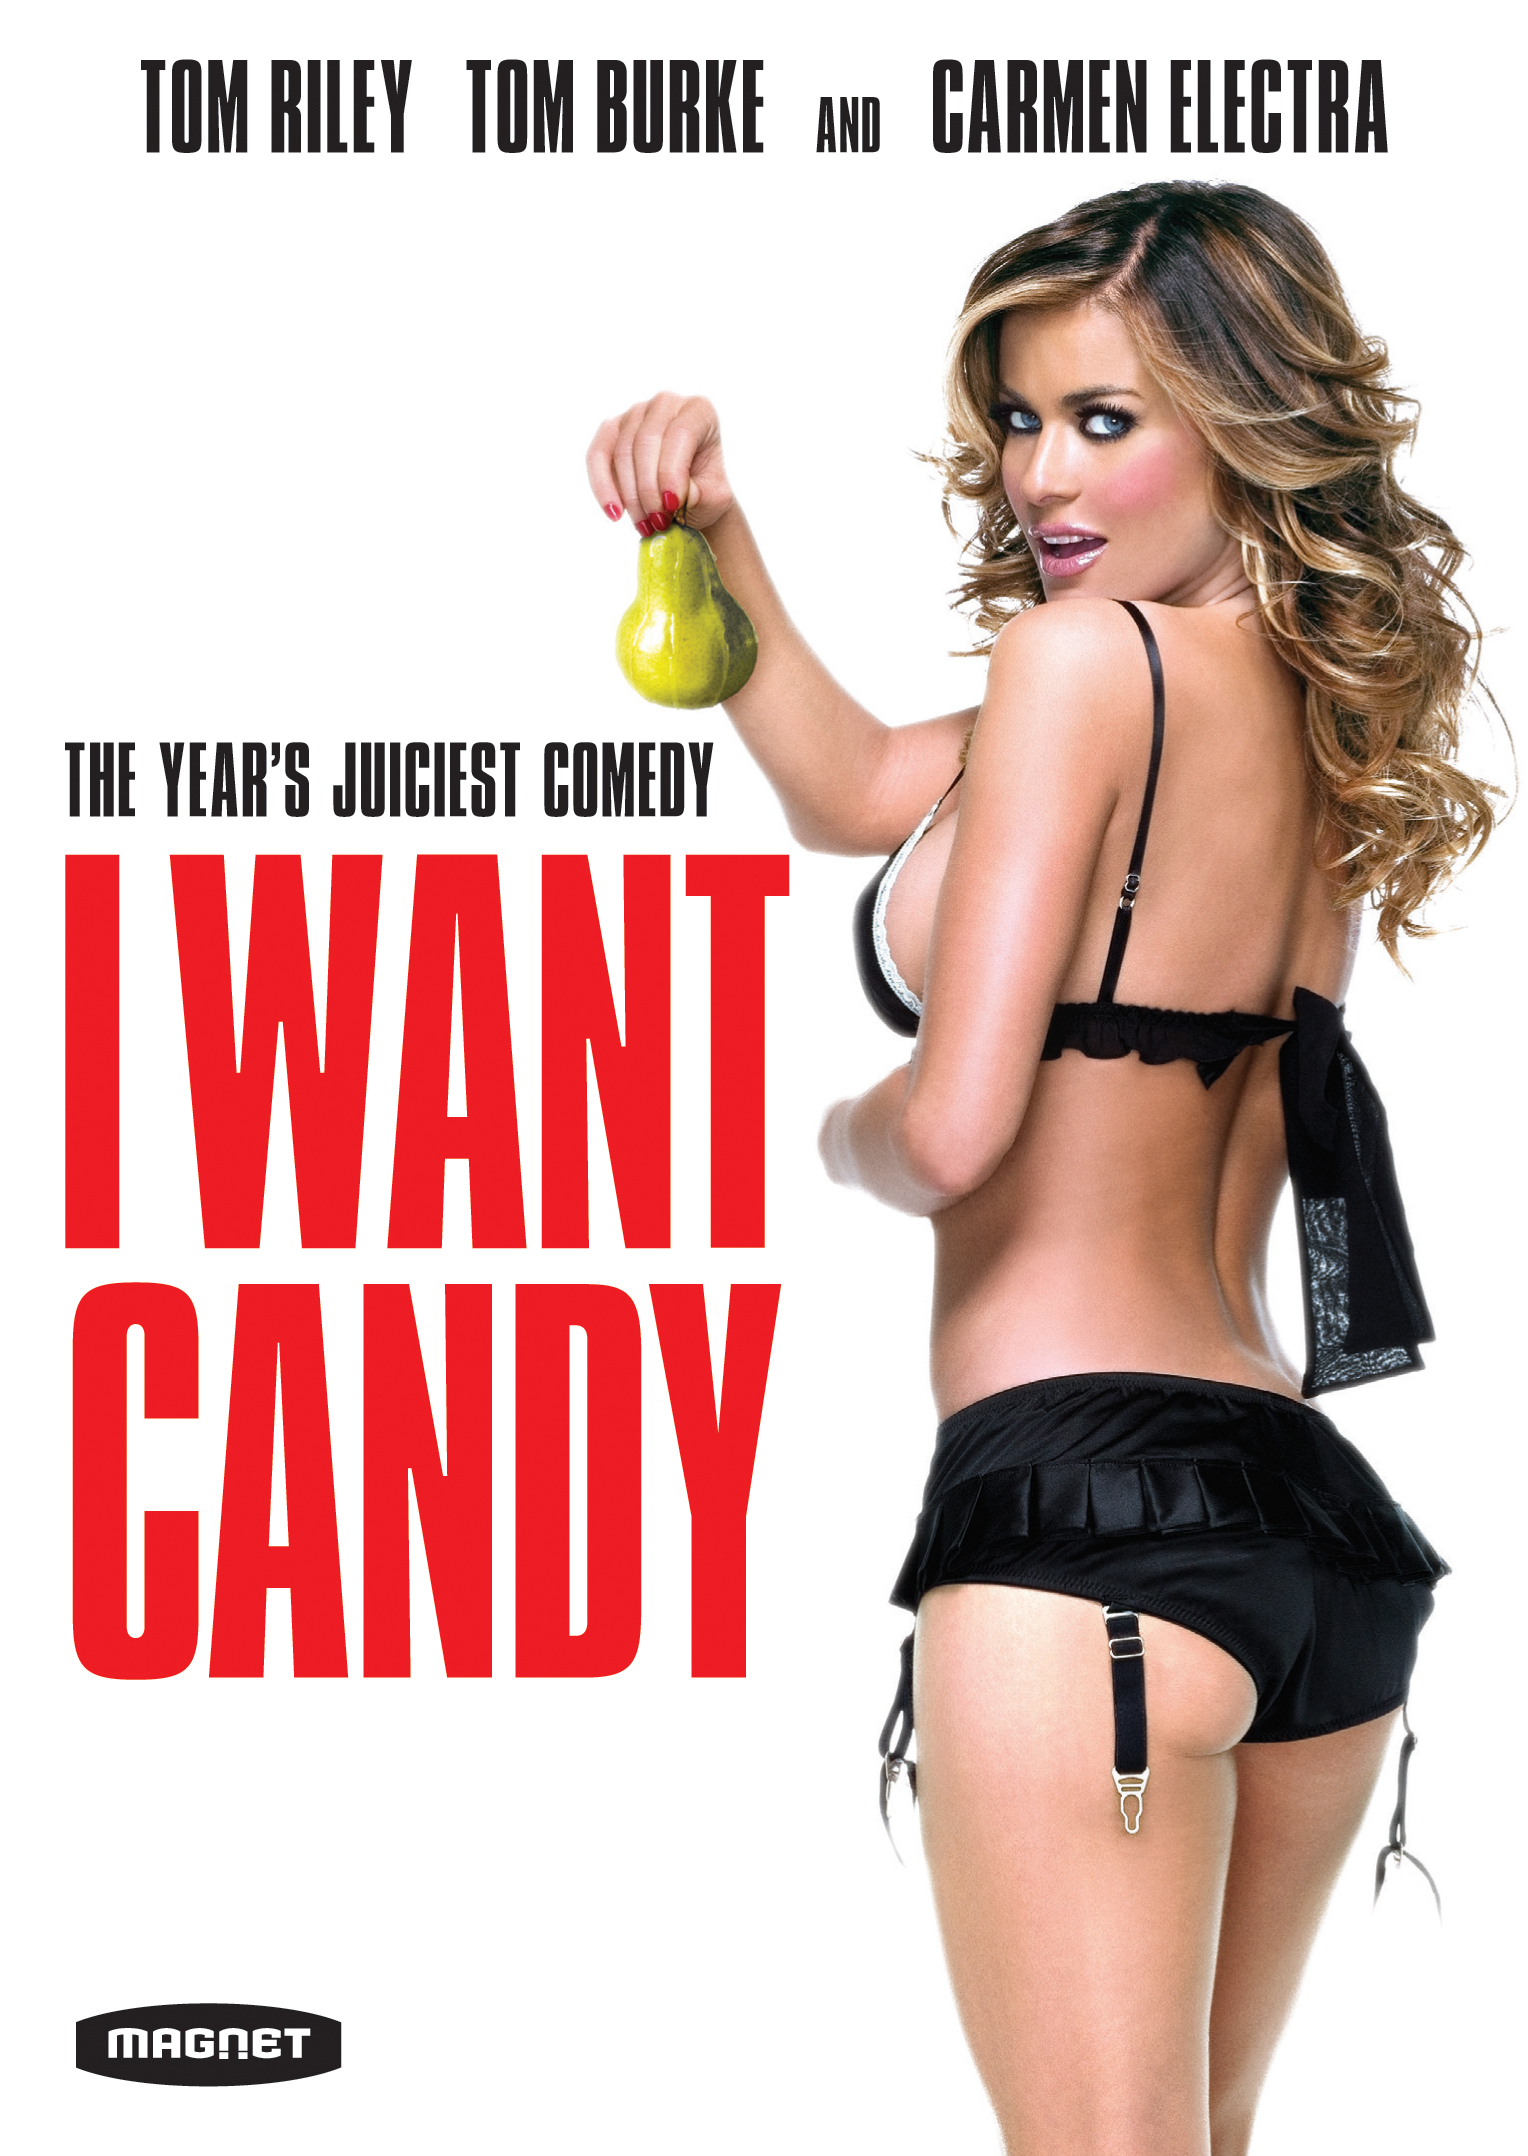 Candy Heaven & Nina Heaven Porn comedy — magnolia pictures   independent films   documentaries